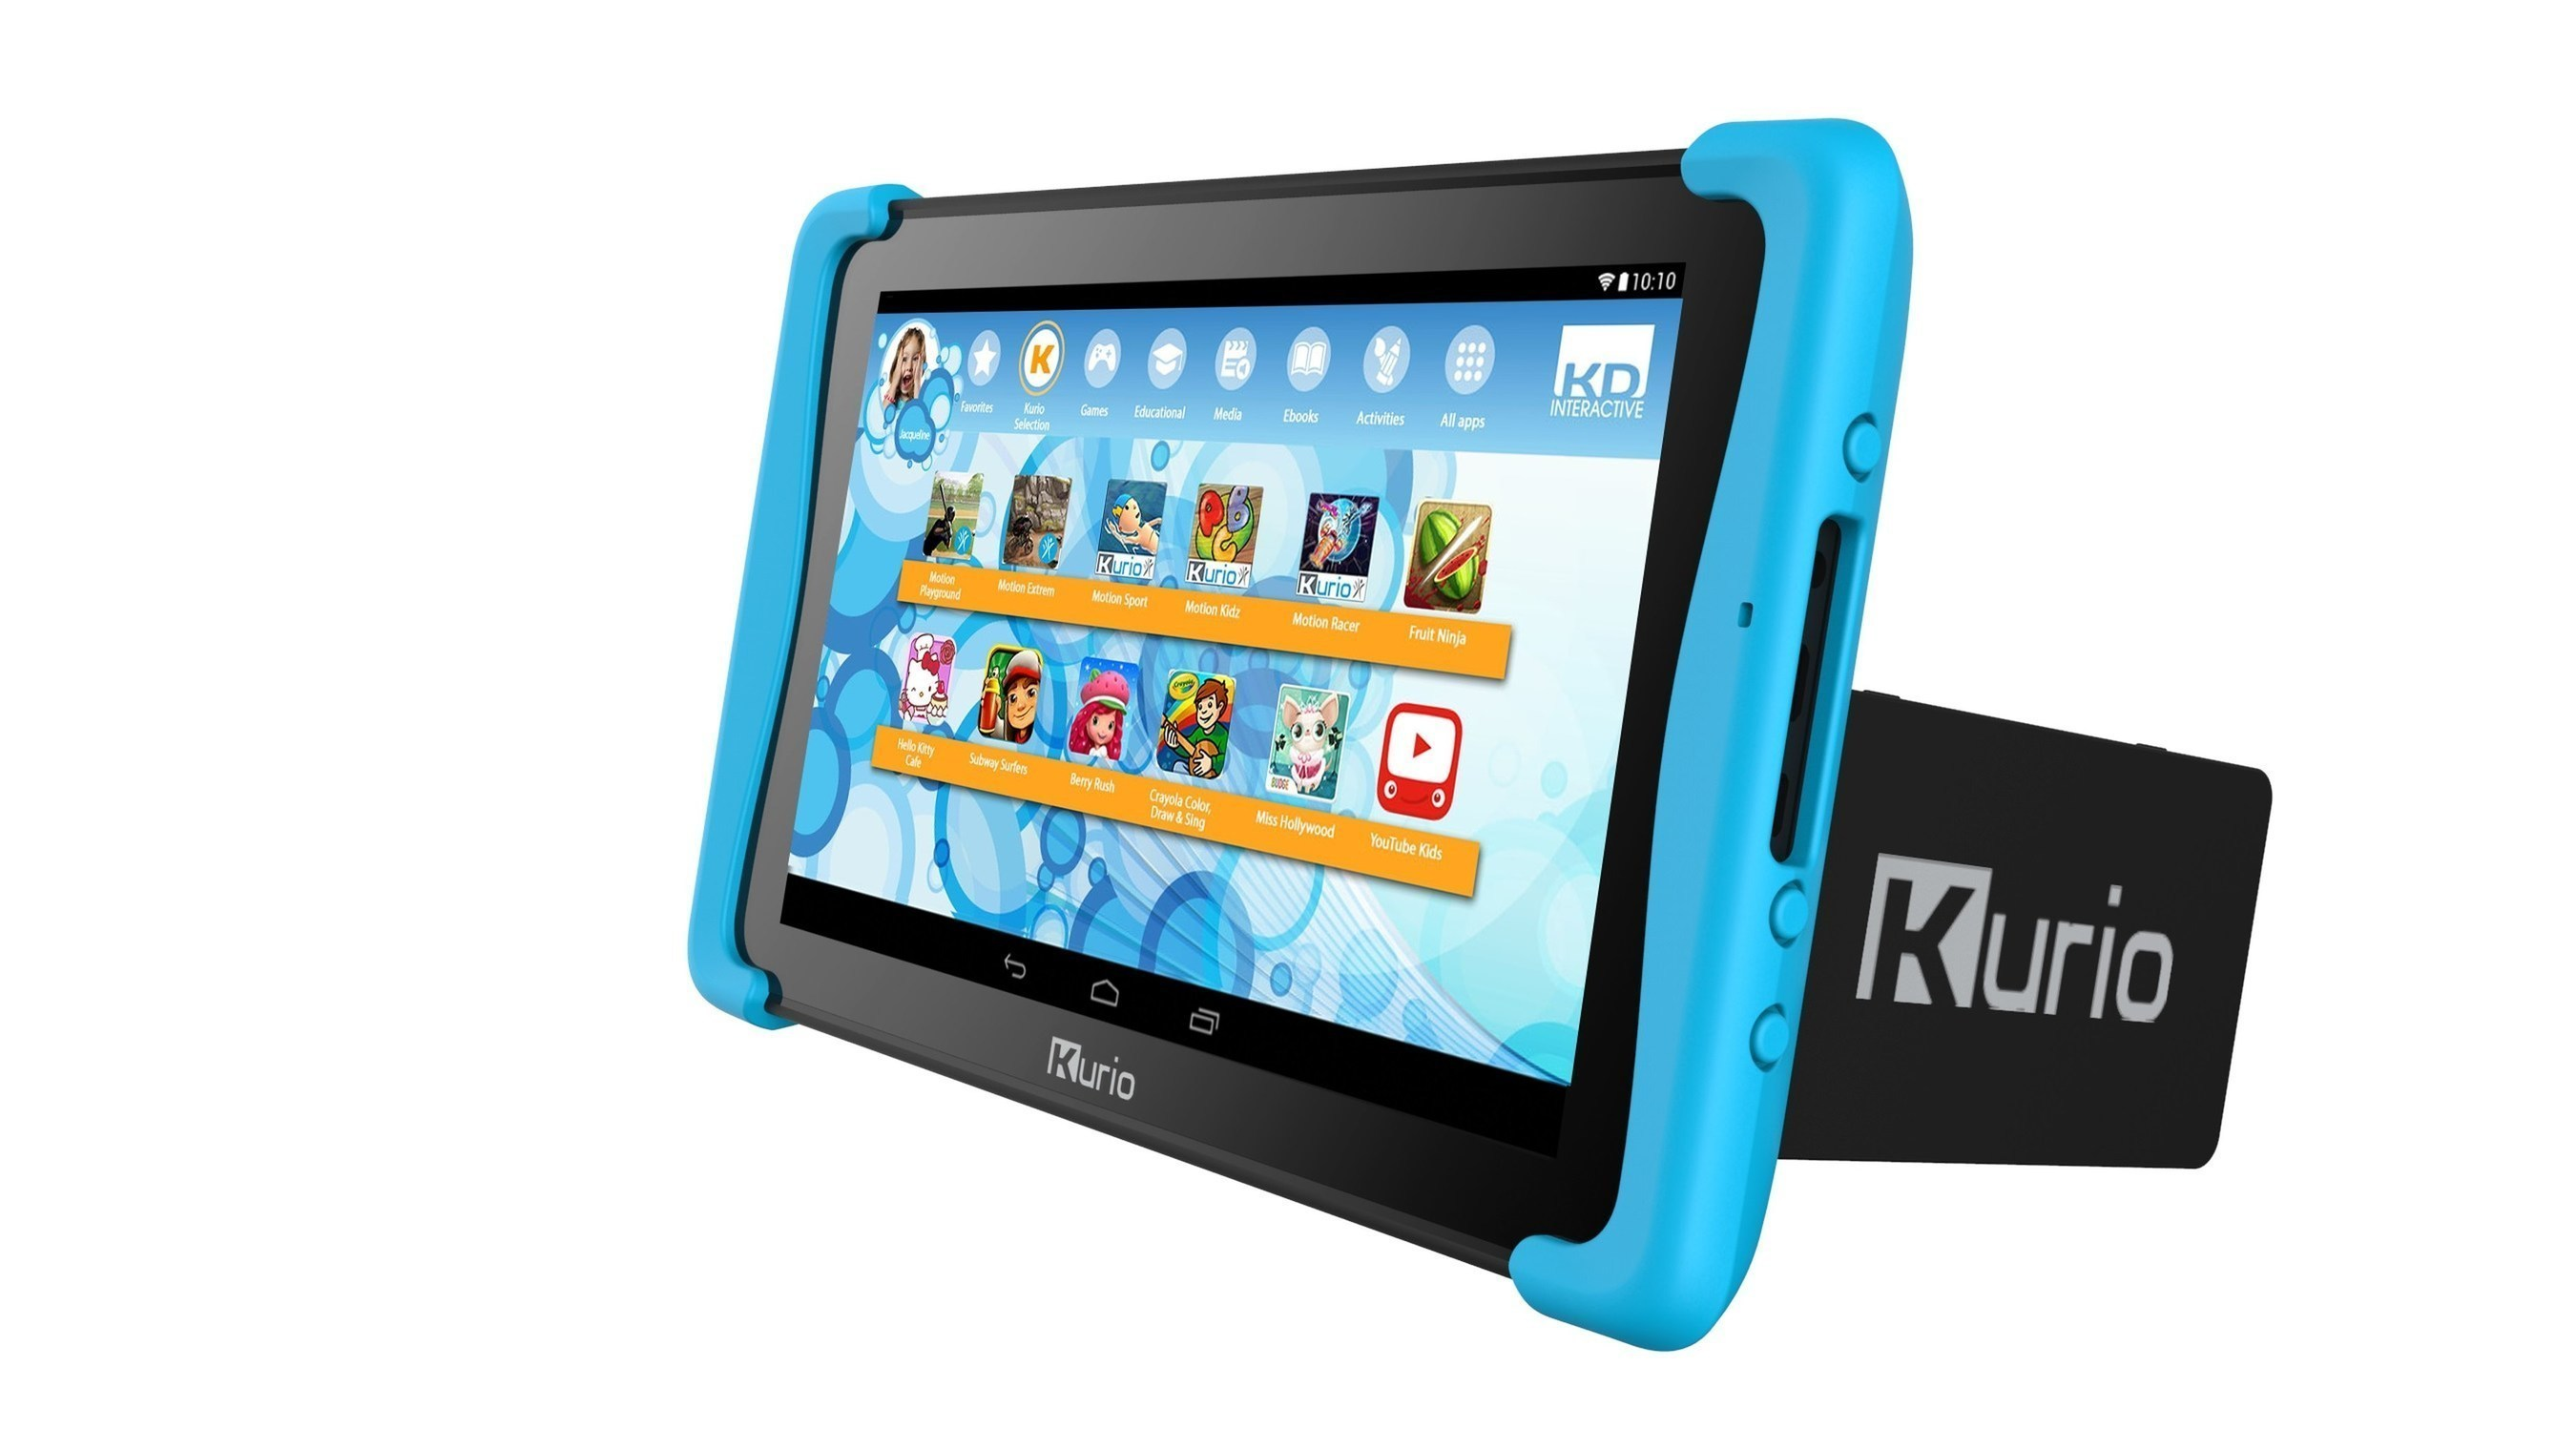 KD Interactive Introduces Kurio Smart, The First Windows 2-in-1 Tablet Computer For Kids -- Combining The Best Of Productivity And Fun For Just $199.99